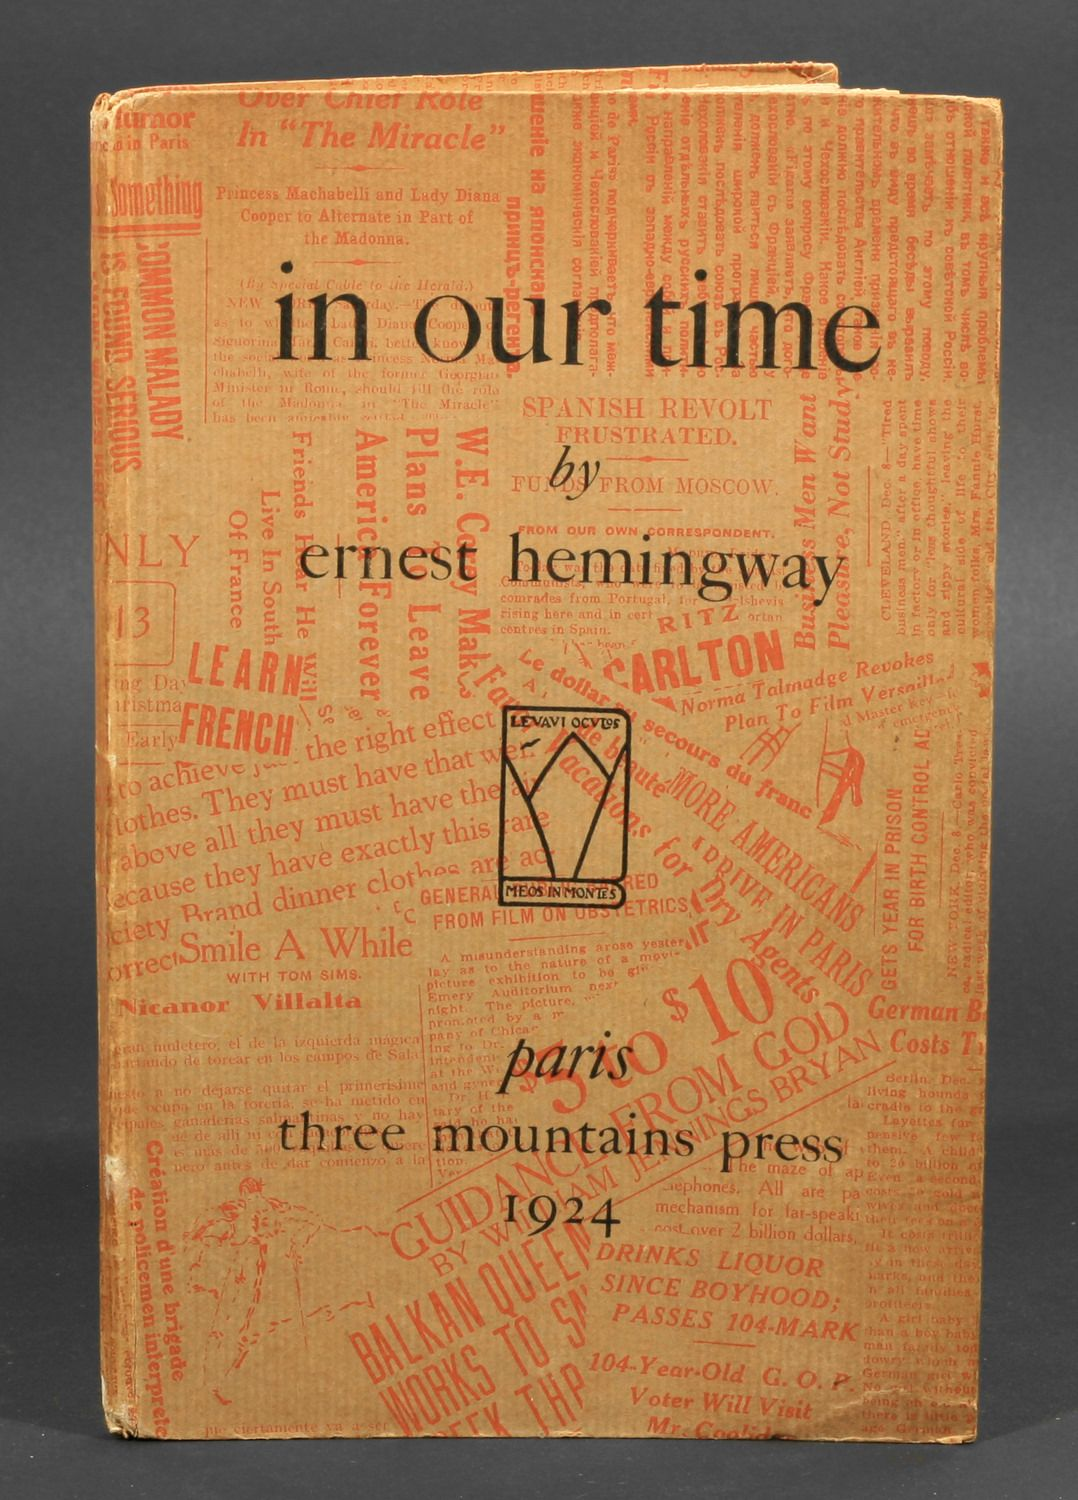 'In Our Time' by Ernest Hemingway 1924 First Edition signed by author and published by the Three Mountain Press, Paris http://www.cinemas-de-recherche.org/gimage/f5b4860fb45d42f30437c4642361fa45.jpg